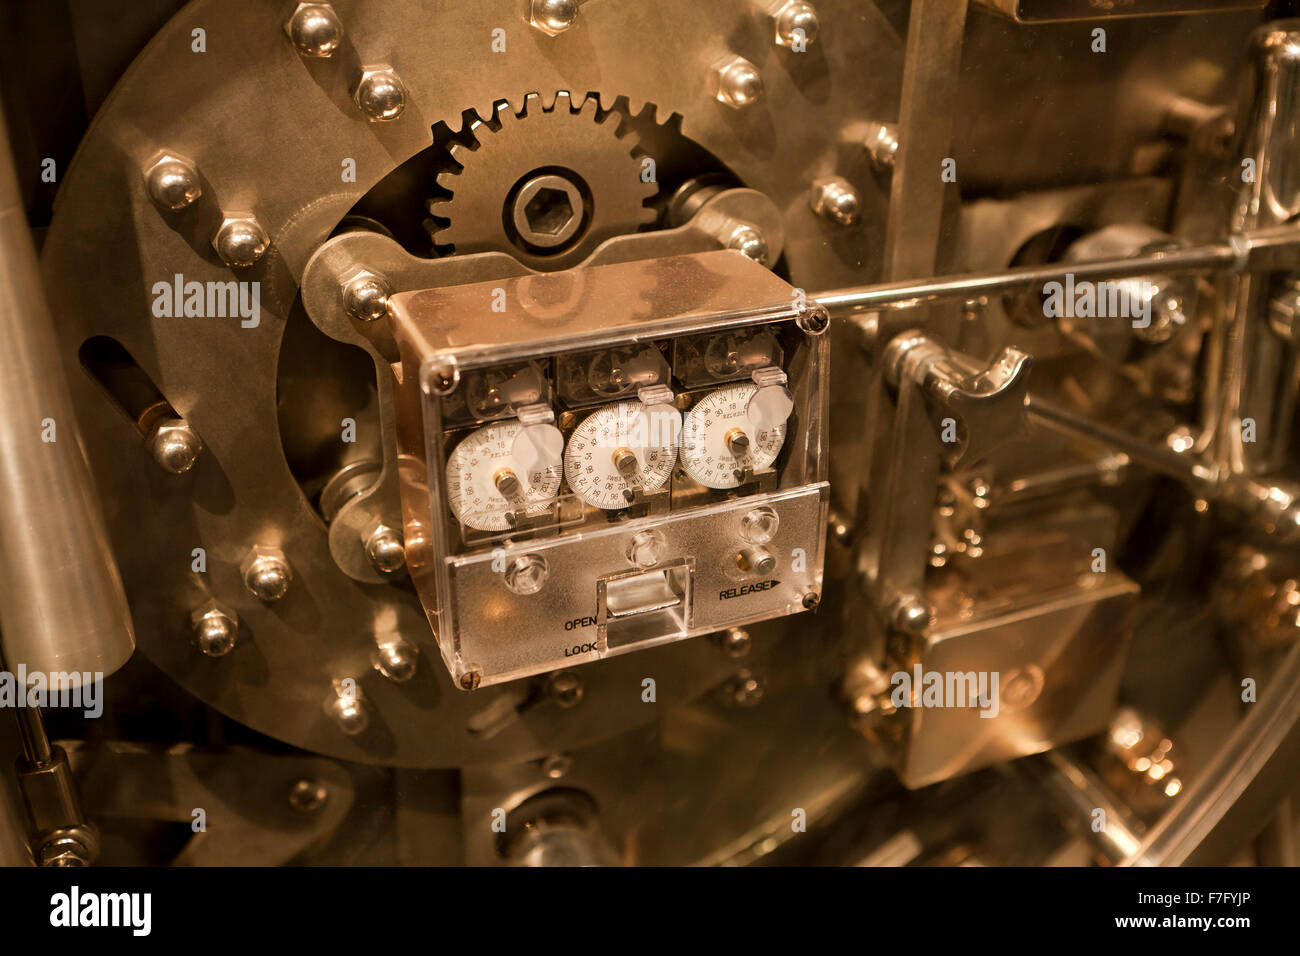 Bank vault door lock mechanism - USA - Stock Image